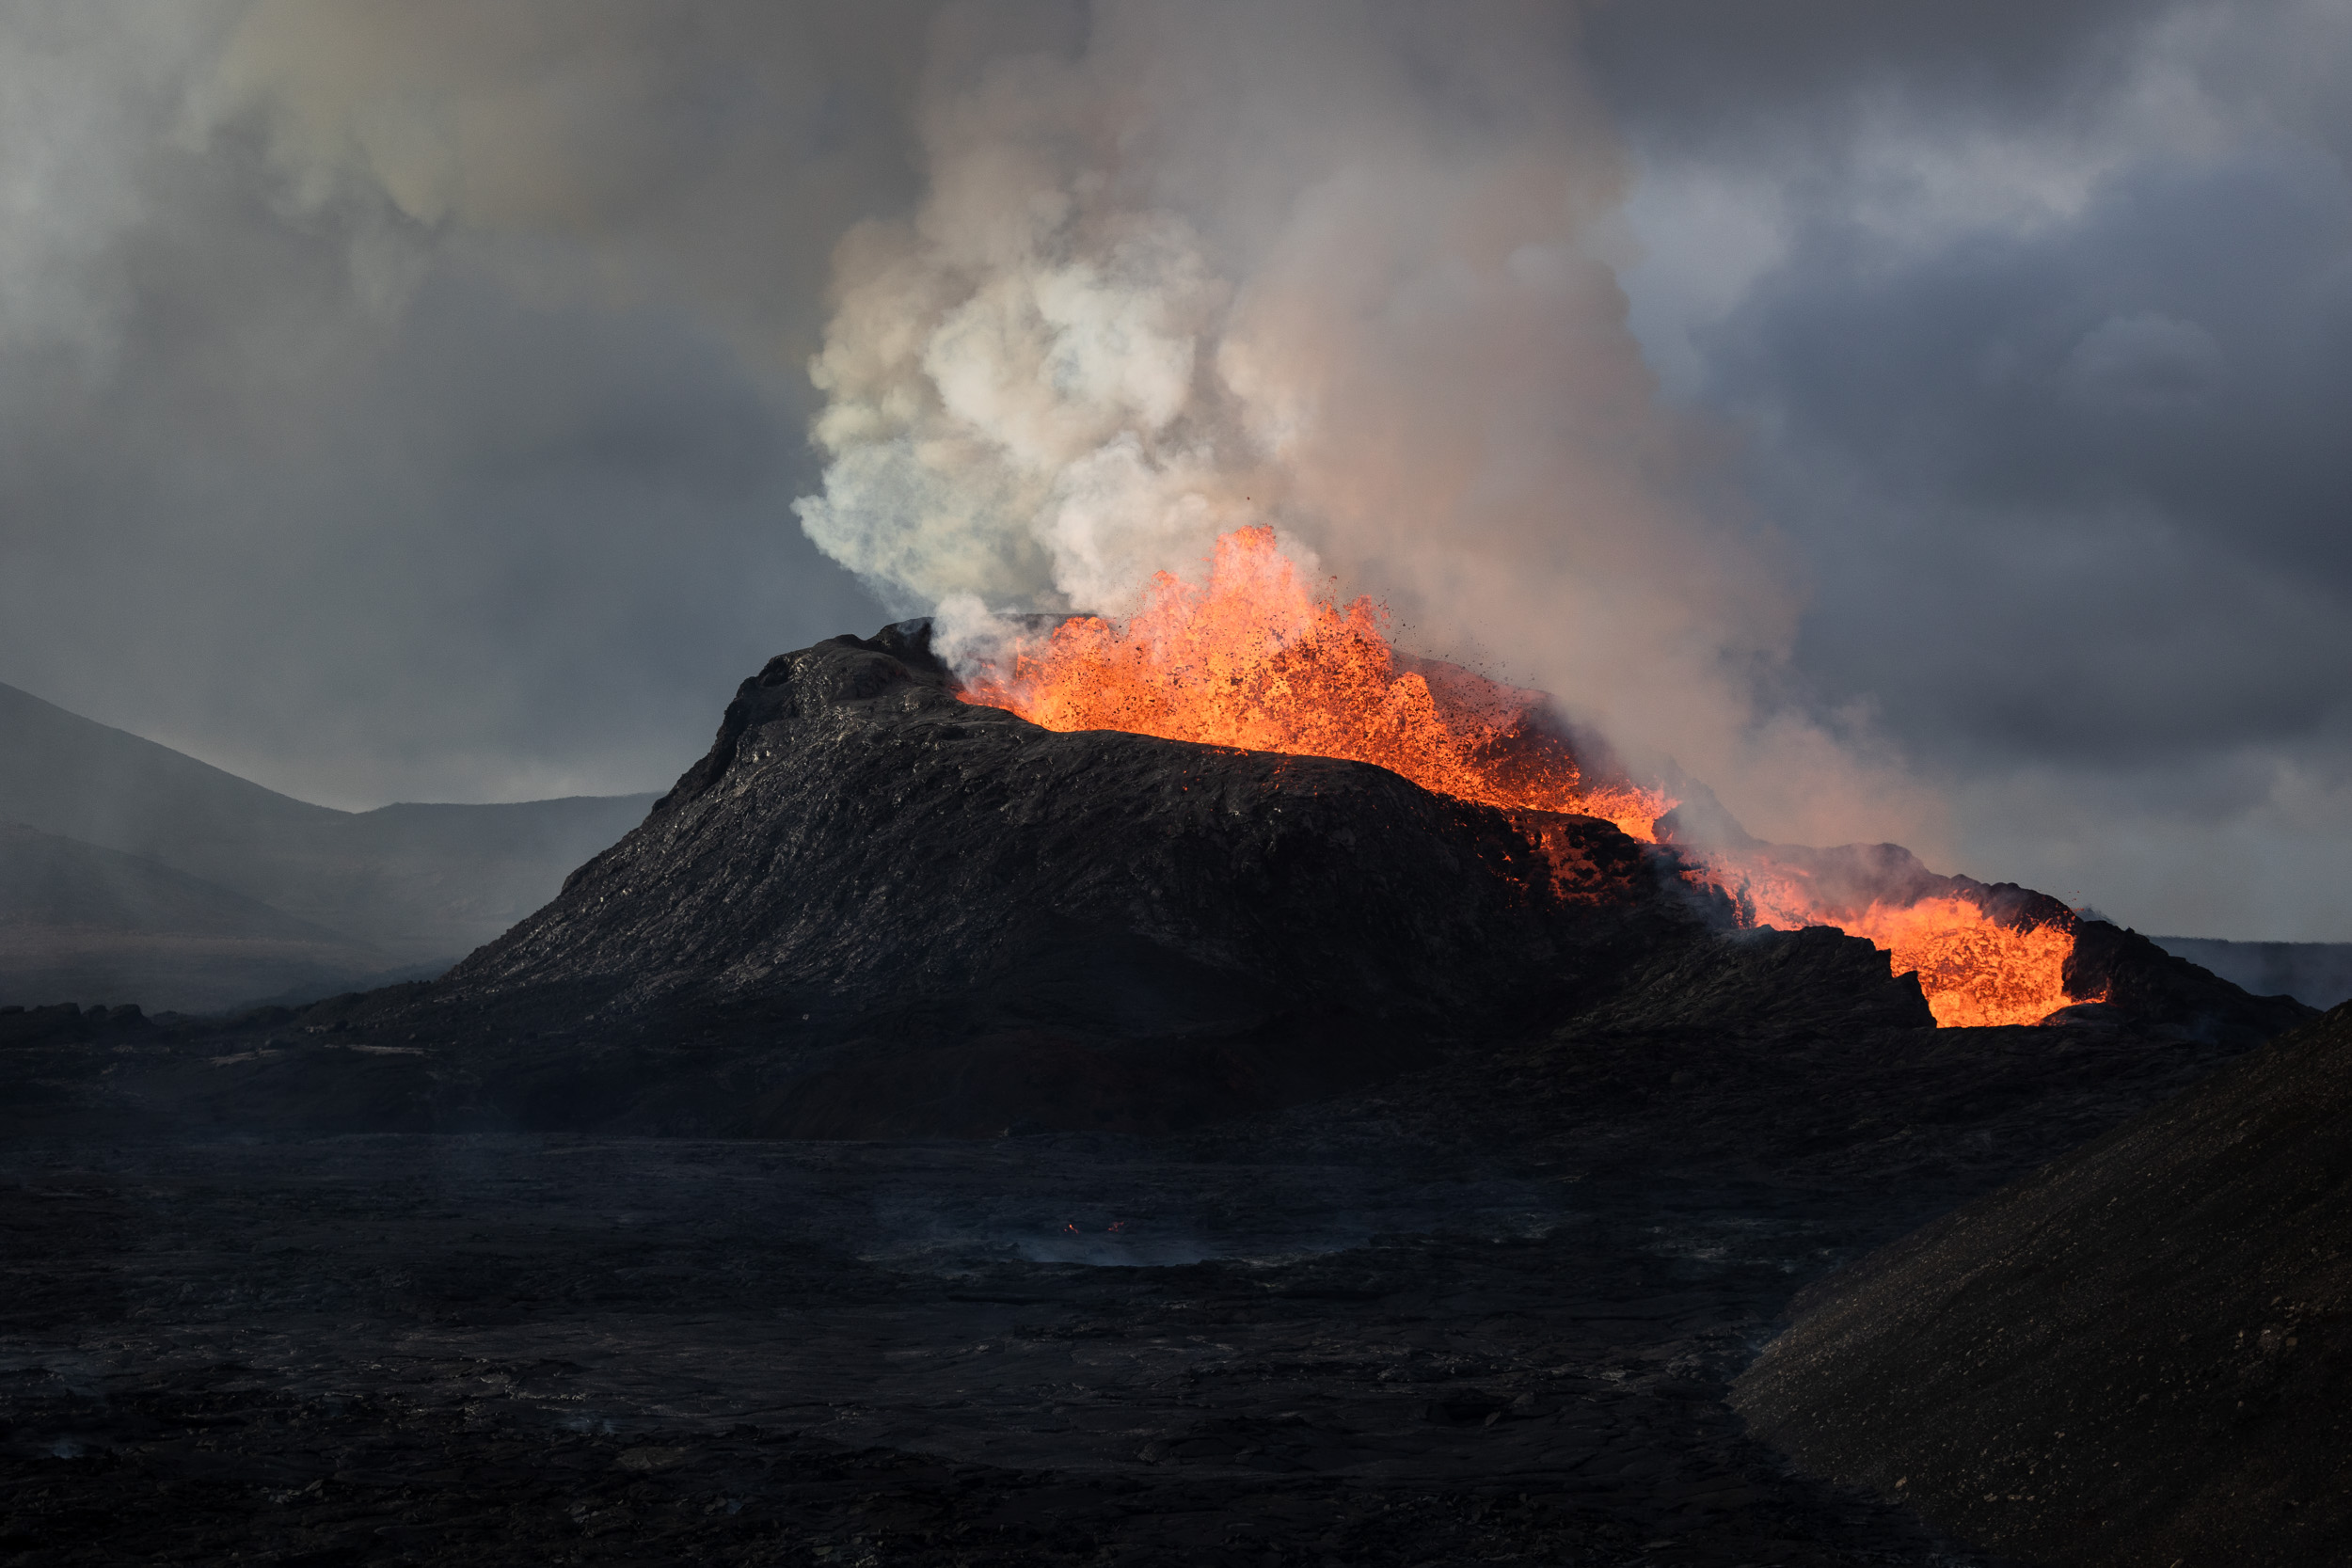 My Photographic Journey of a Volcanic 10 Weeks